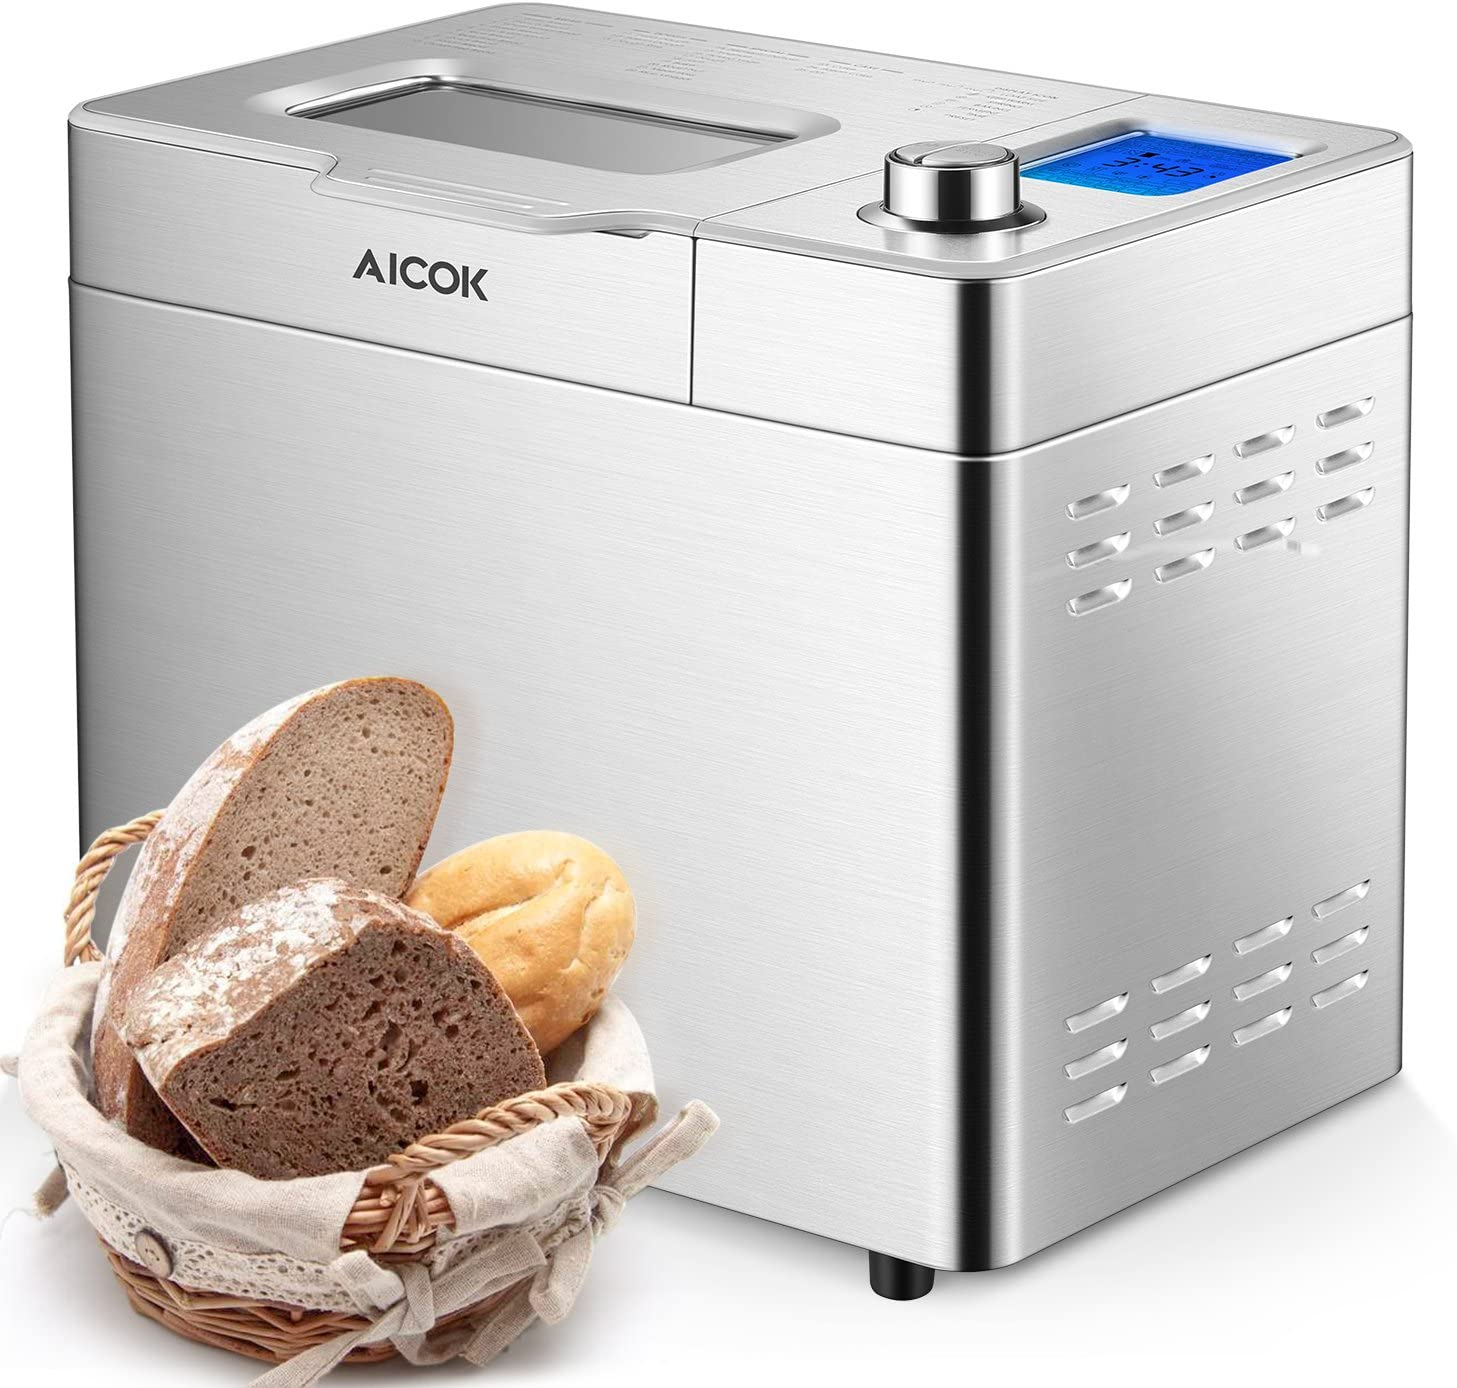 Aicok Stainless Steel Bread Machine, 2LB 25-in-1 Programmable XL Bread Maker with Fruit Nut Dispenser, Nonstick Ceramic Pan, 3 Loaf Sizes 3 Crust ...